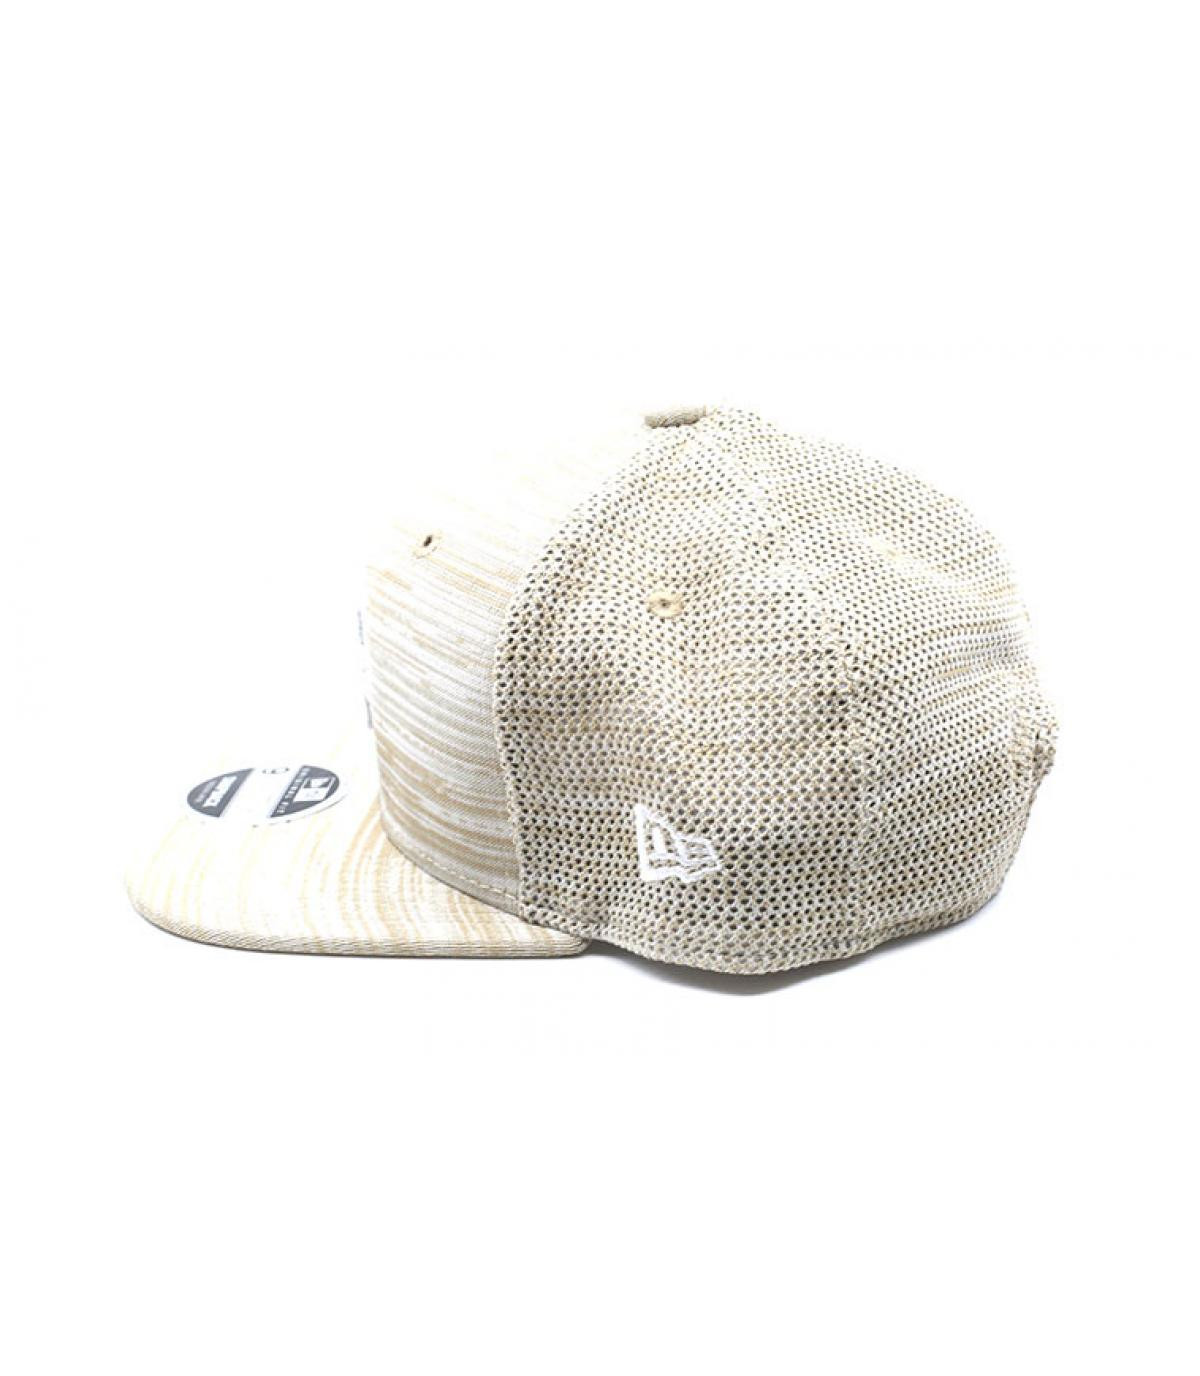 Détails Snapback Engineered Fit 9Fifty Boston stone white - image 4